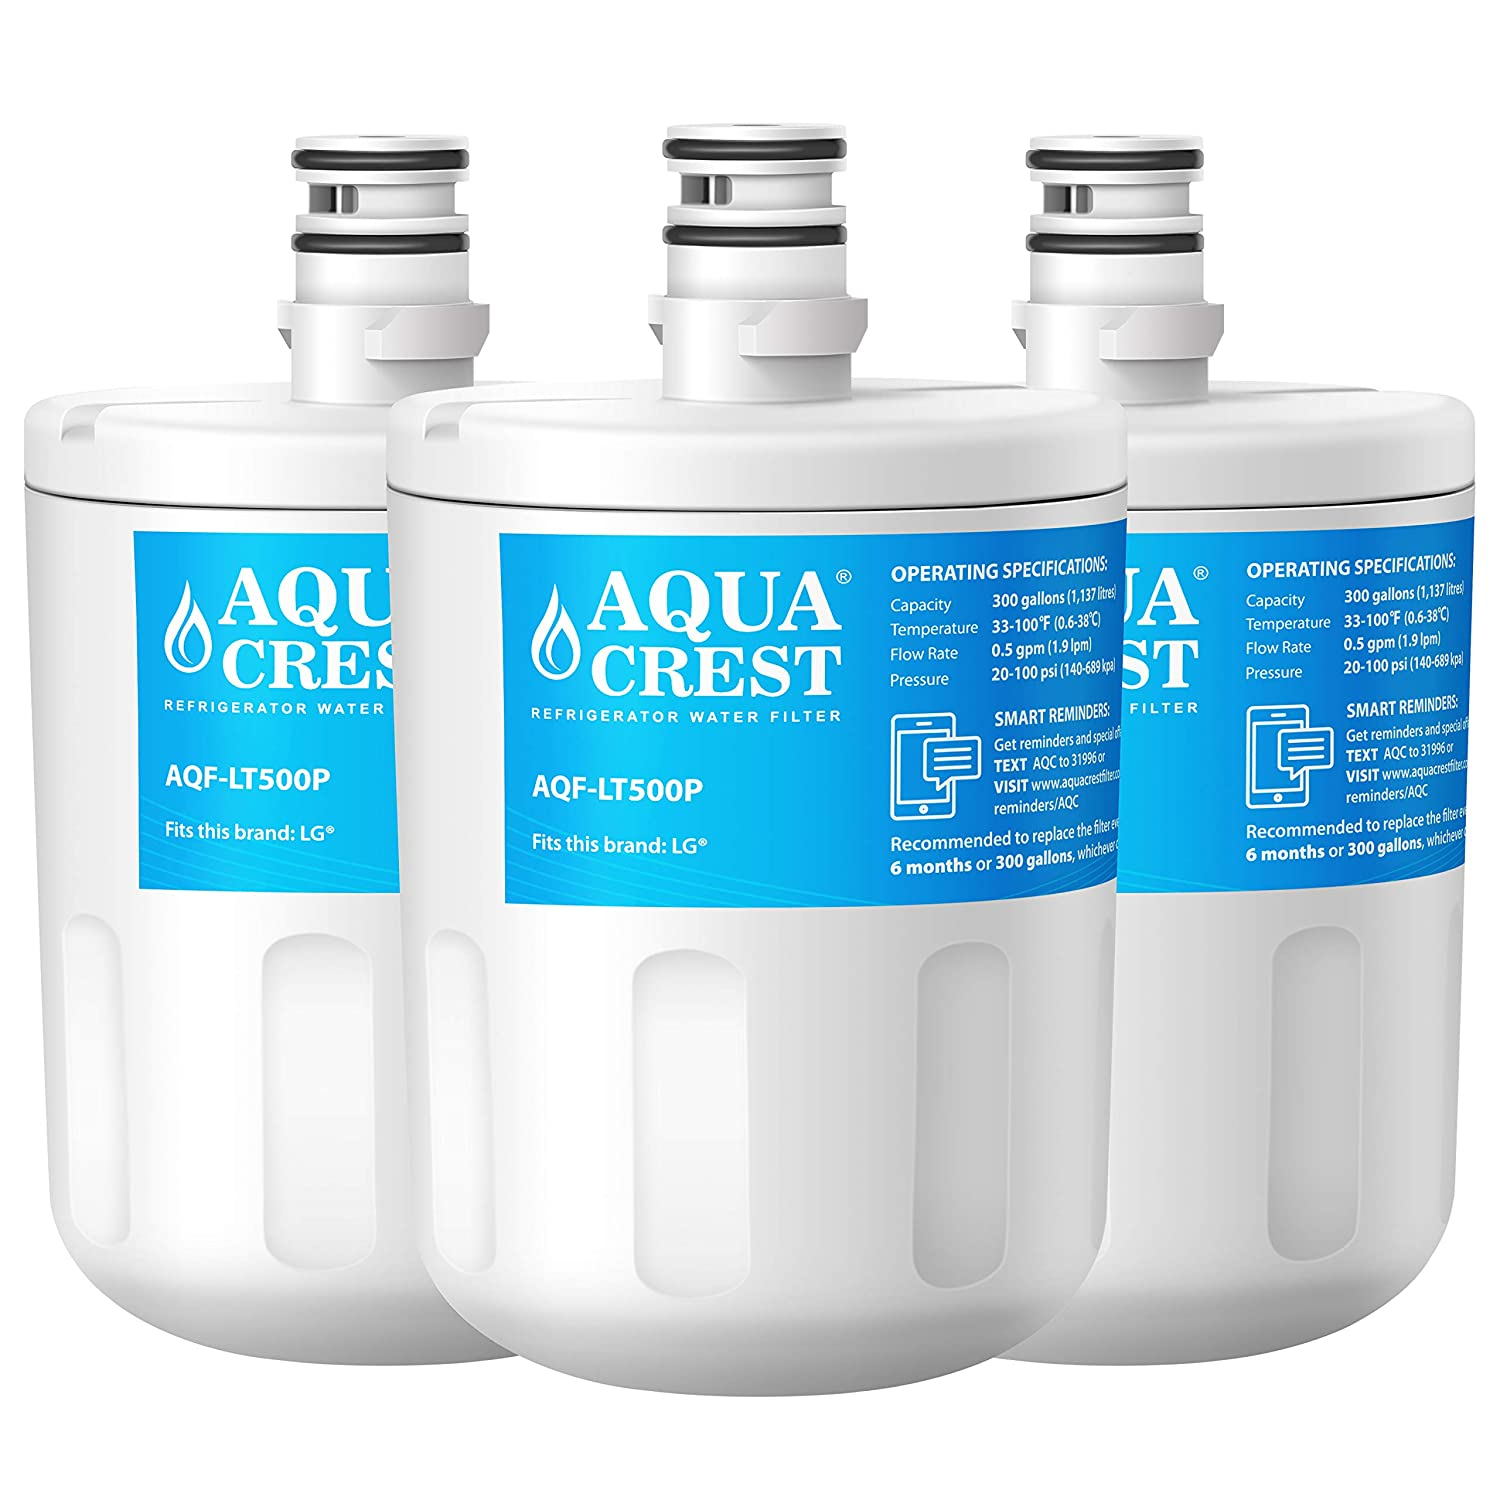 AQUACREST Refrigerator Water Filter, Compatible with LG 5231JA2002A, LT500P, GEN11042FR-08, LFX25974ST, ADQ72910901, ADQ72910907, Kenmore 9890, 46-9890, 469890 (Pack of 3)